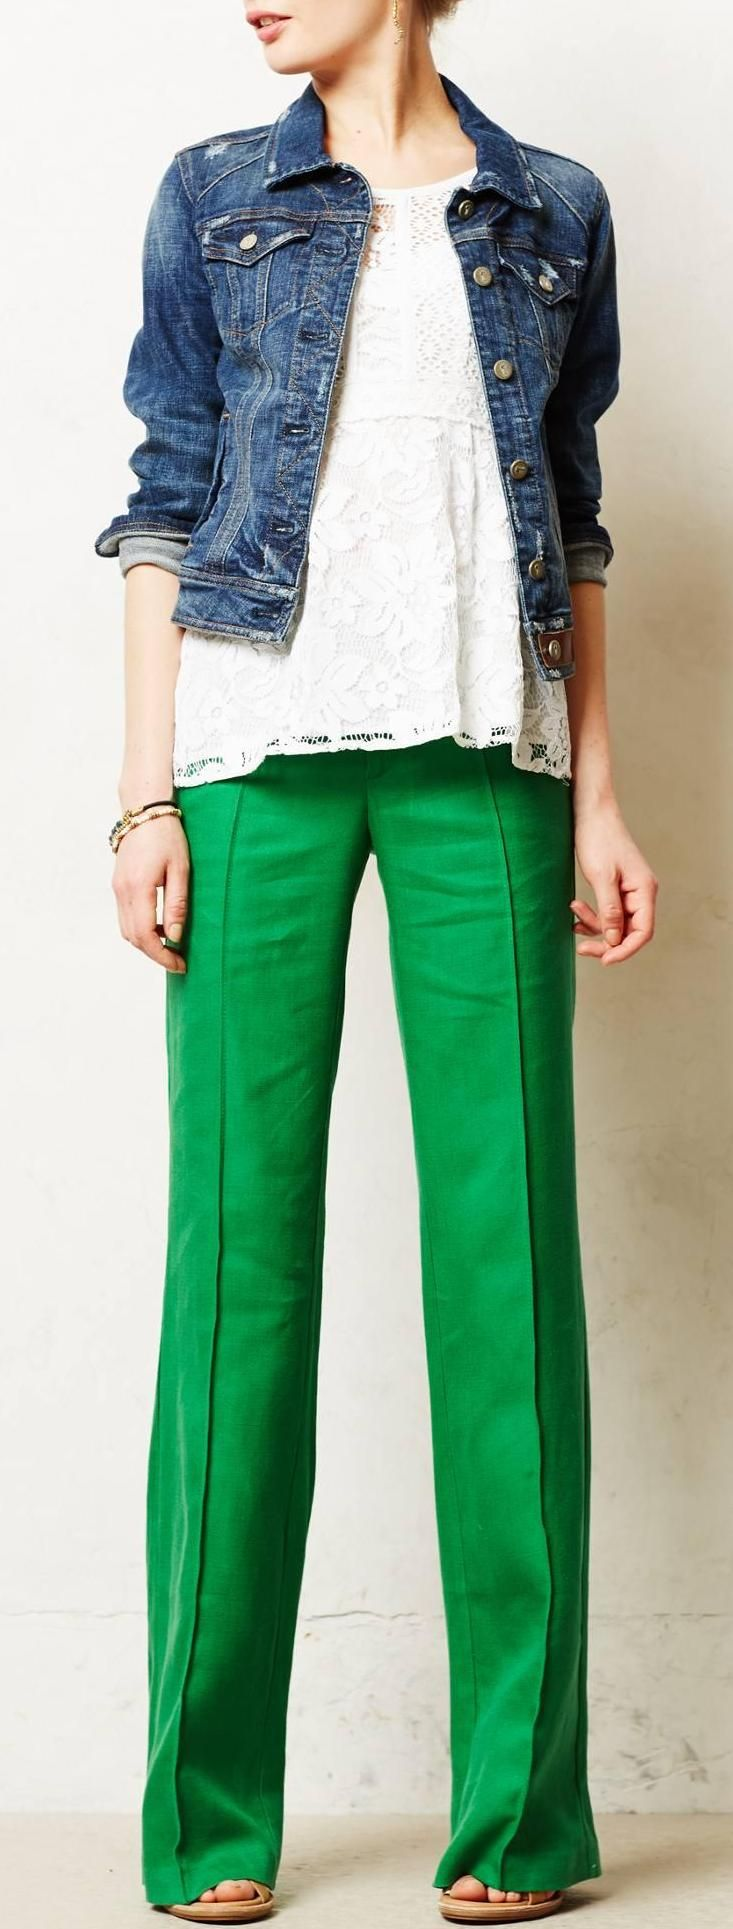 Brighton Linen Wide Legs in bold color, soft girly lace and edgy jean jacket, great look for anything